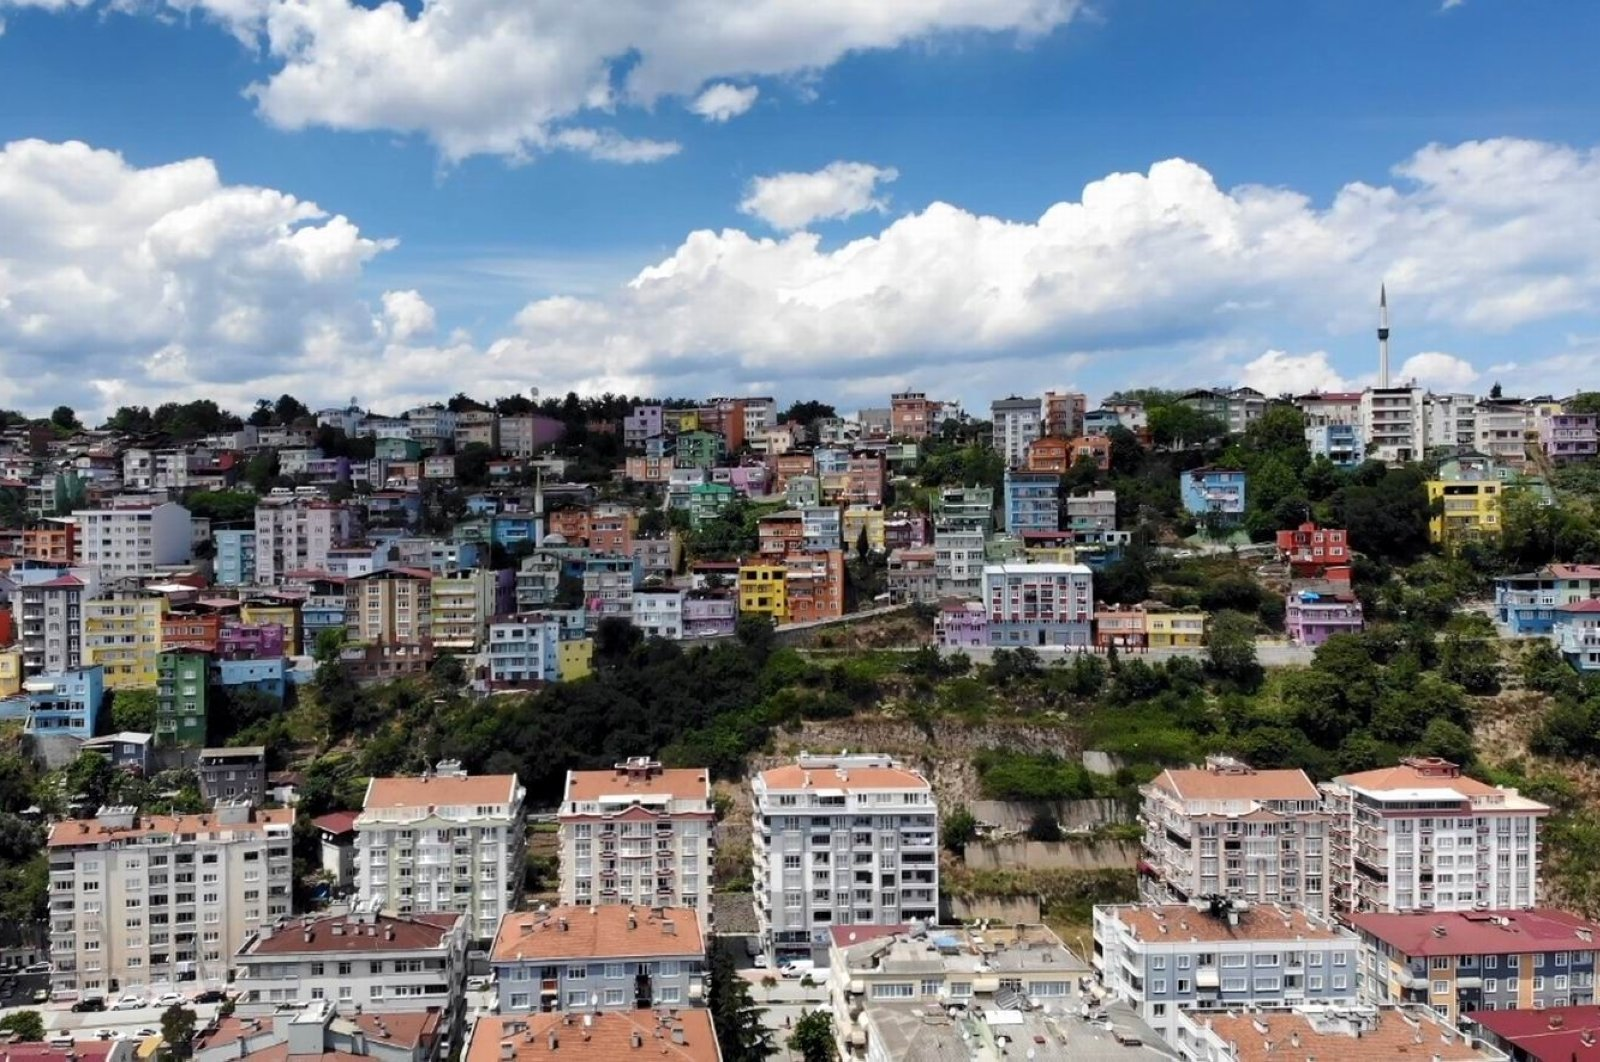 Residential buildings are seen in Turkey's northern Samsun province, Aug. 15, 2020. (IHA Photo)